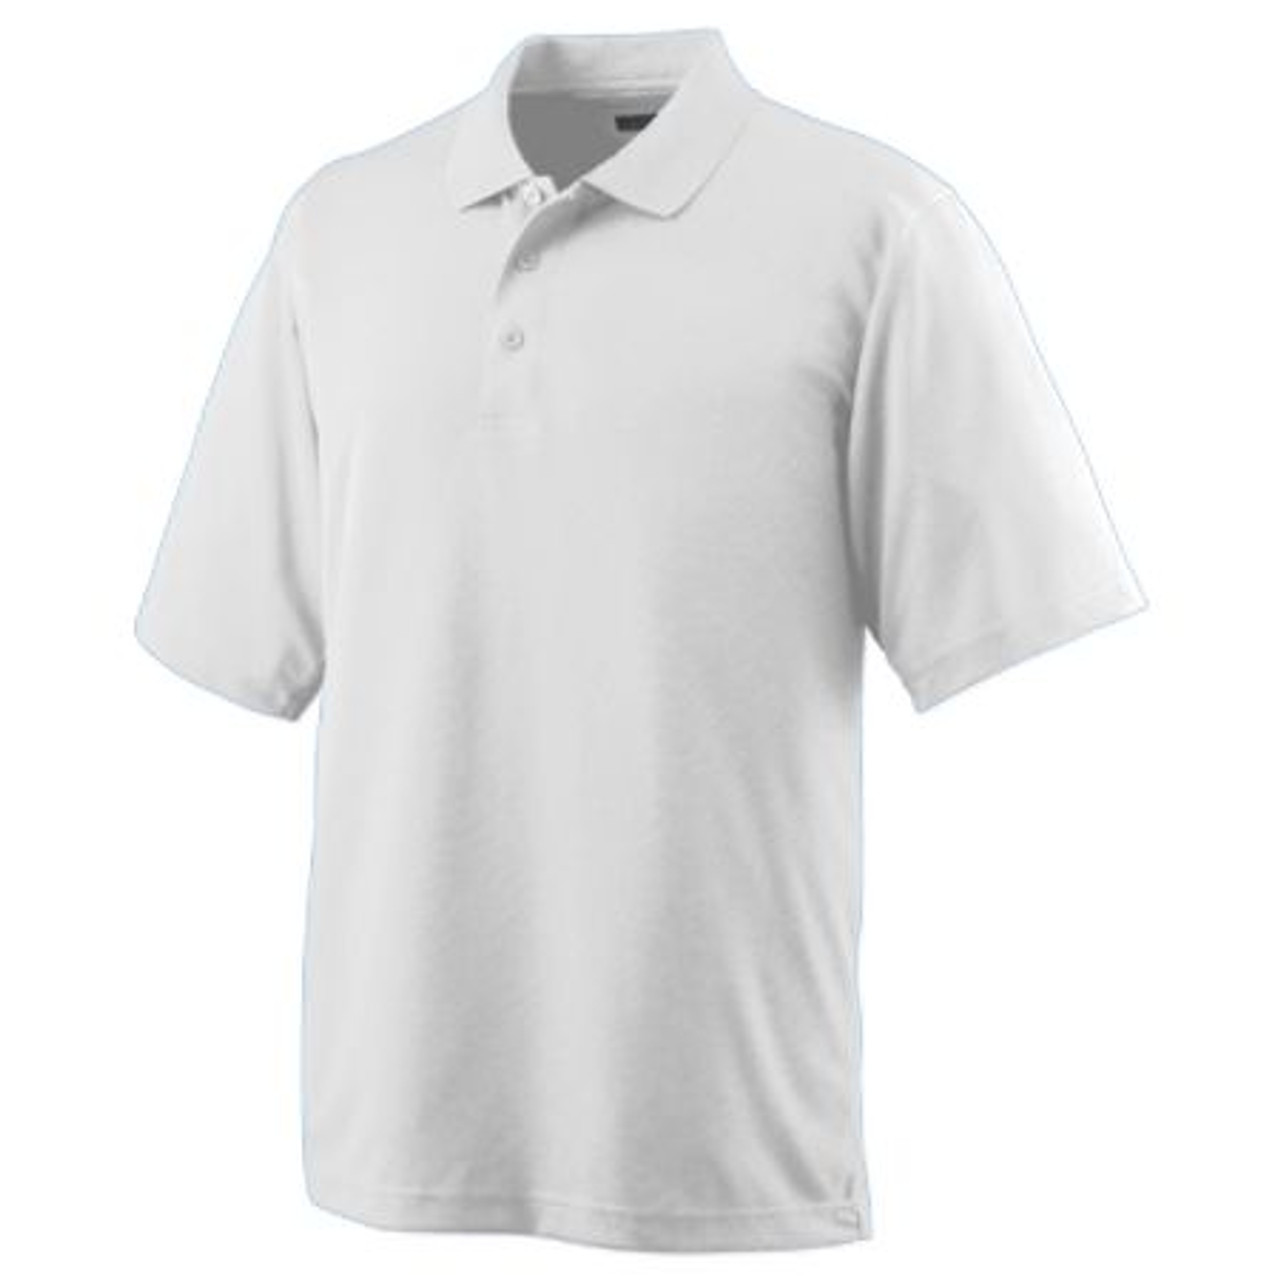 Augusta Volleyball & Swimming Referee Shirt No Pocket